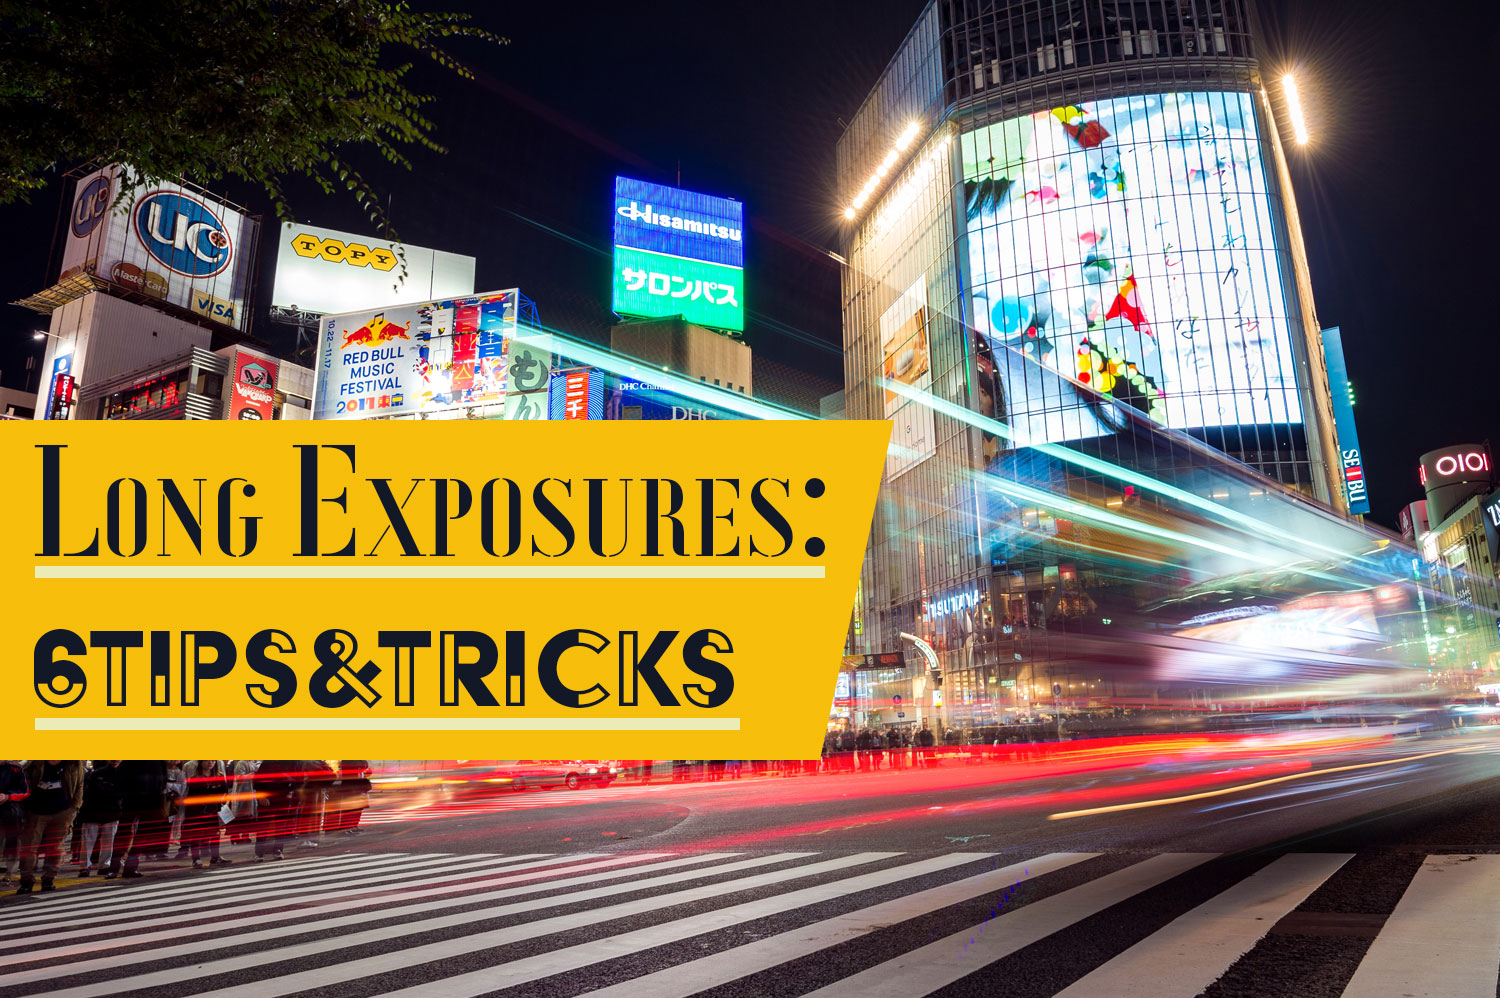 long-exposure-tips-and-tricks-0.jpg